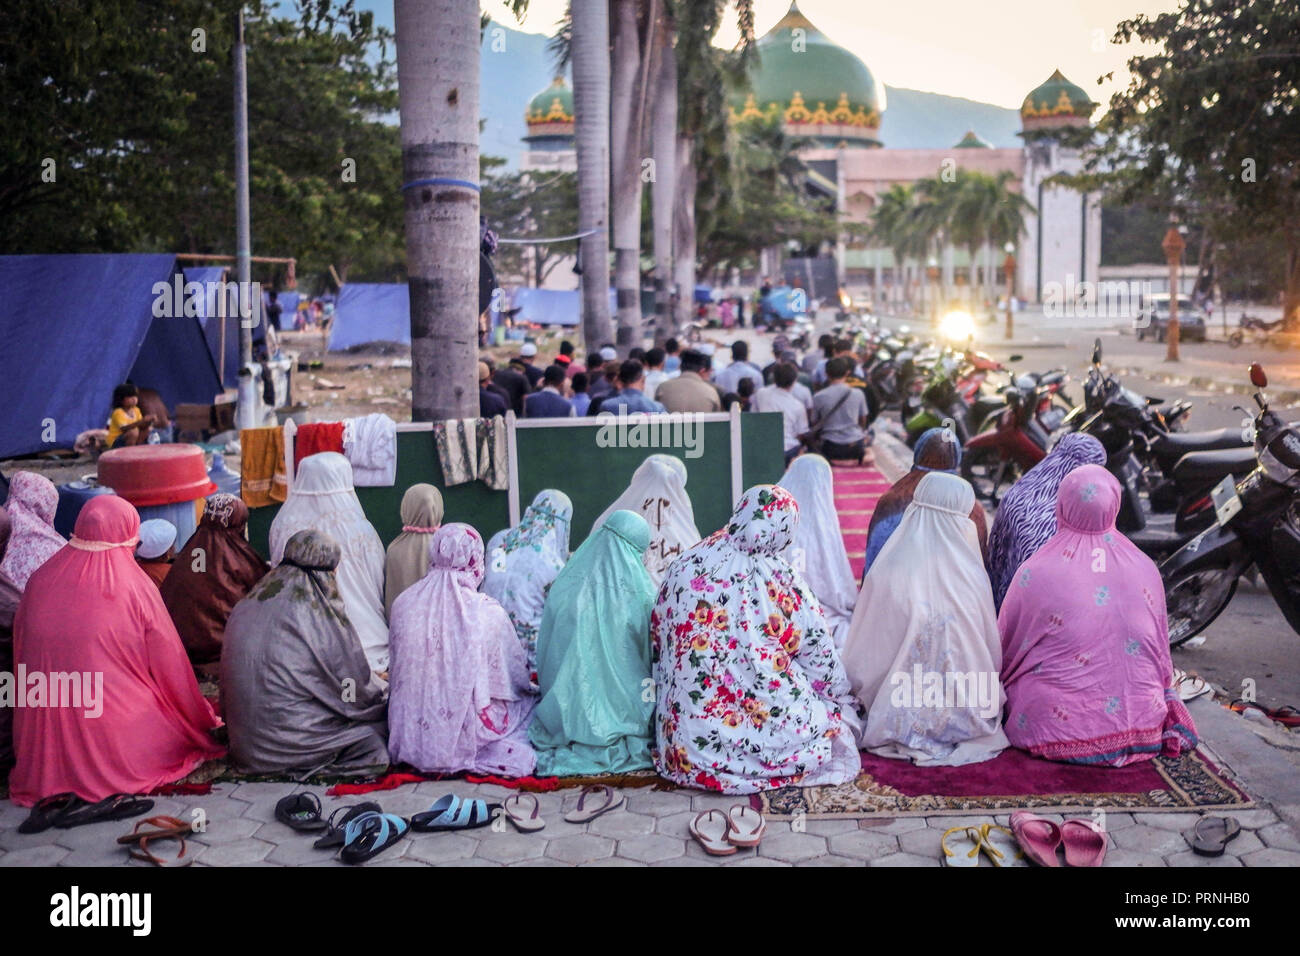 Palu, Indonesia. 4th Oct 2018. Female refugees seen praying in in the Lere Refugee settlement. A deadly earthquake measuring 7.7 magnitude and the tsunami wave caused by it has destroyed the city of Palu and much of the area in Central Sulawesi. According to the officials, death toll from devastating quake and tsunami rises to 1,347, around 800 people in hospitals are seriously injured and some 62,000 people have been displaced in 24 camps around the region. Credit: SOPA Images Limited/Alamy Live News - Stock Image